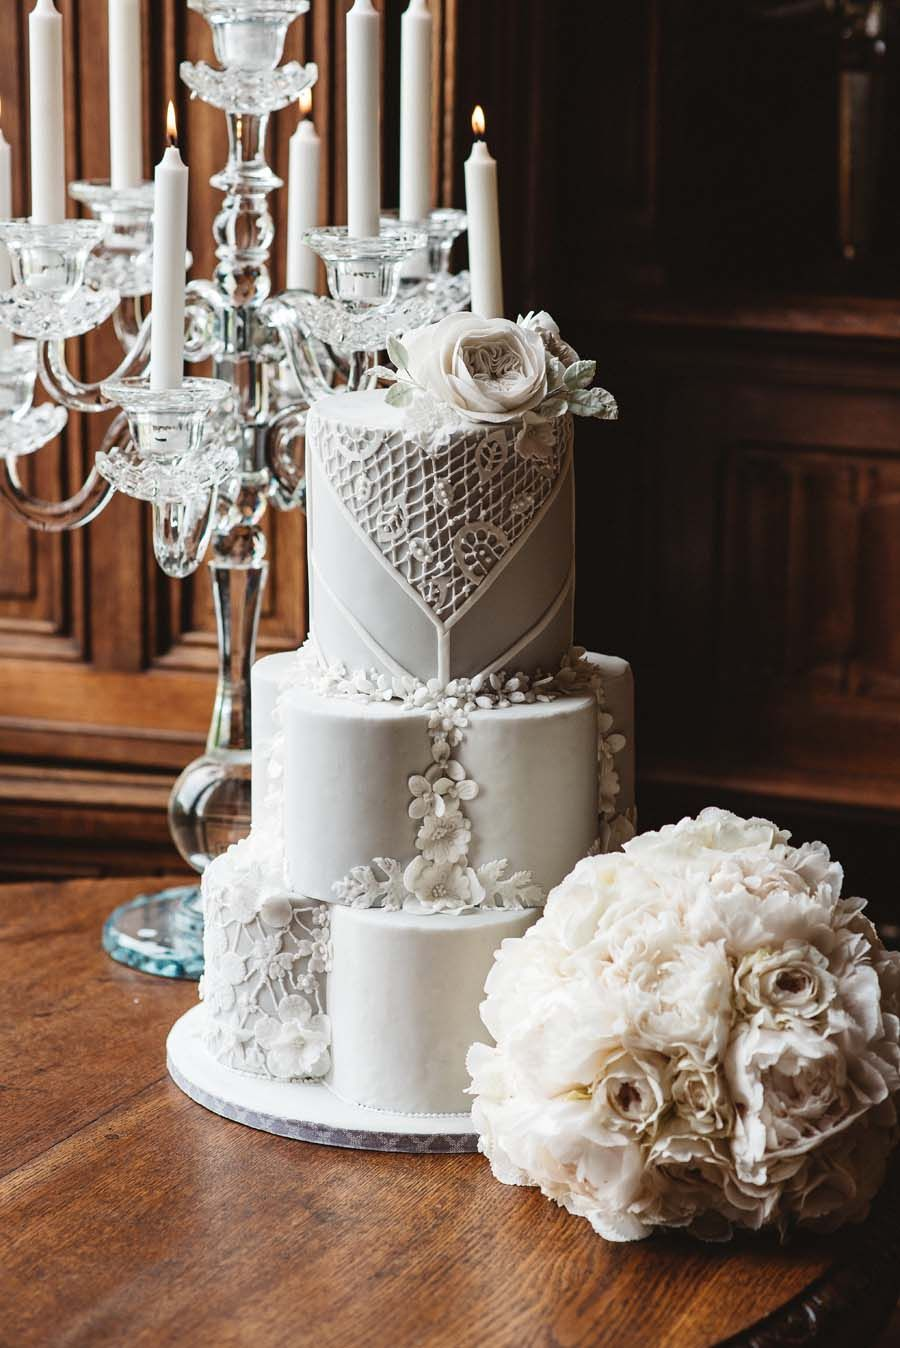 Jewish Fairytale at the Château Wedding Inspiration in